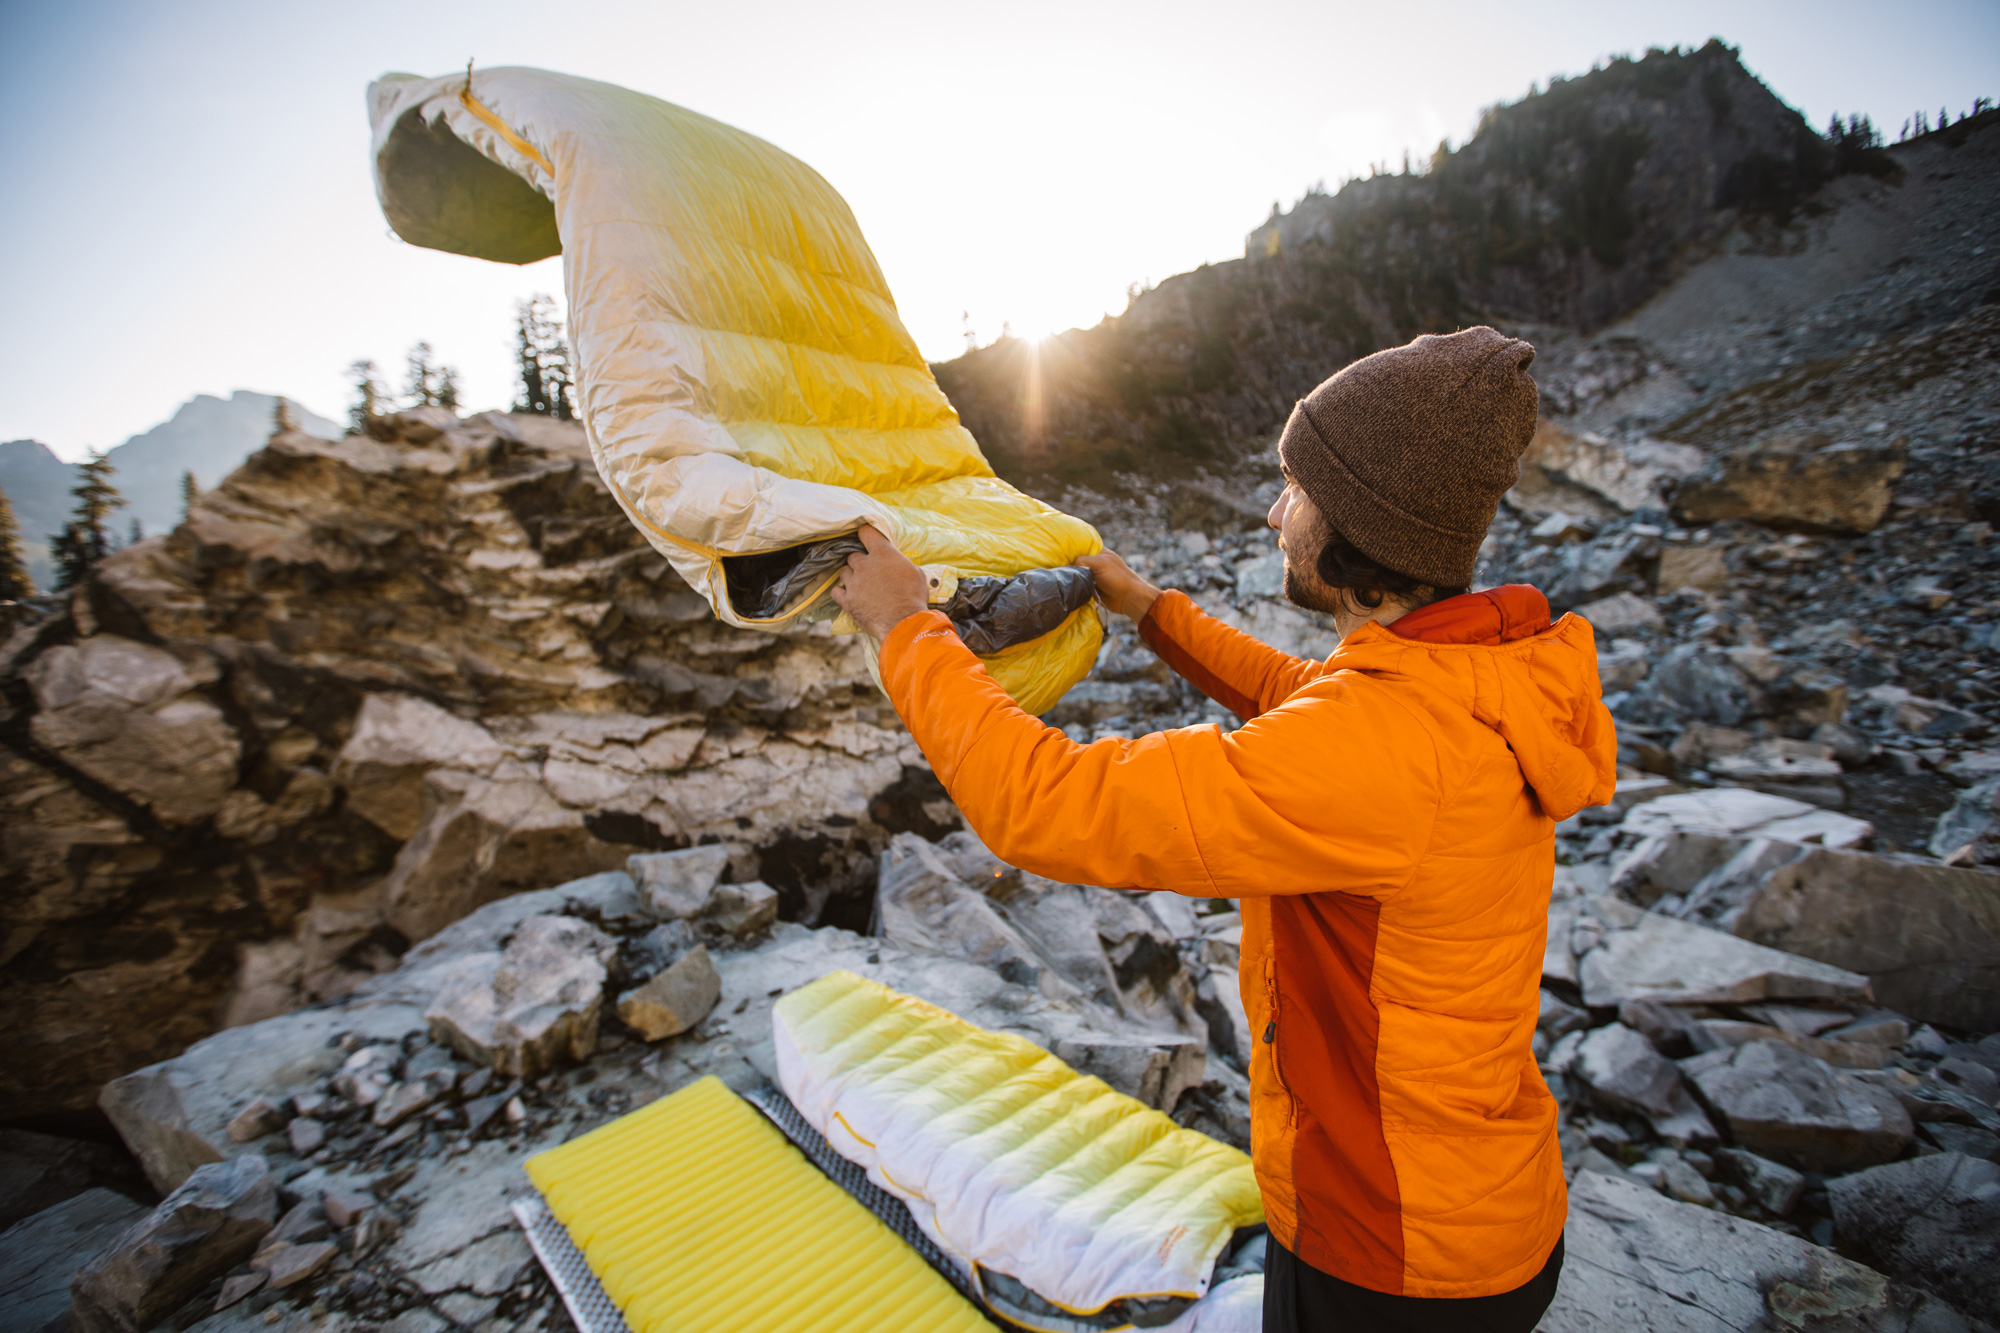 Spreading out the Parsec Sleeping Bag at a bivy.